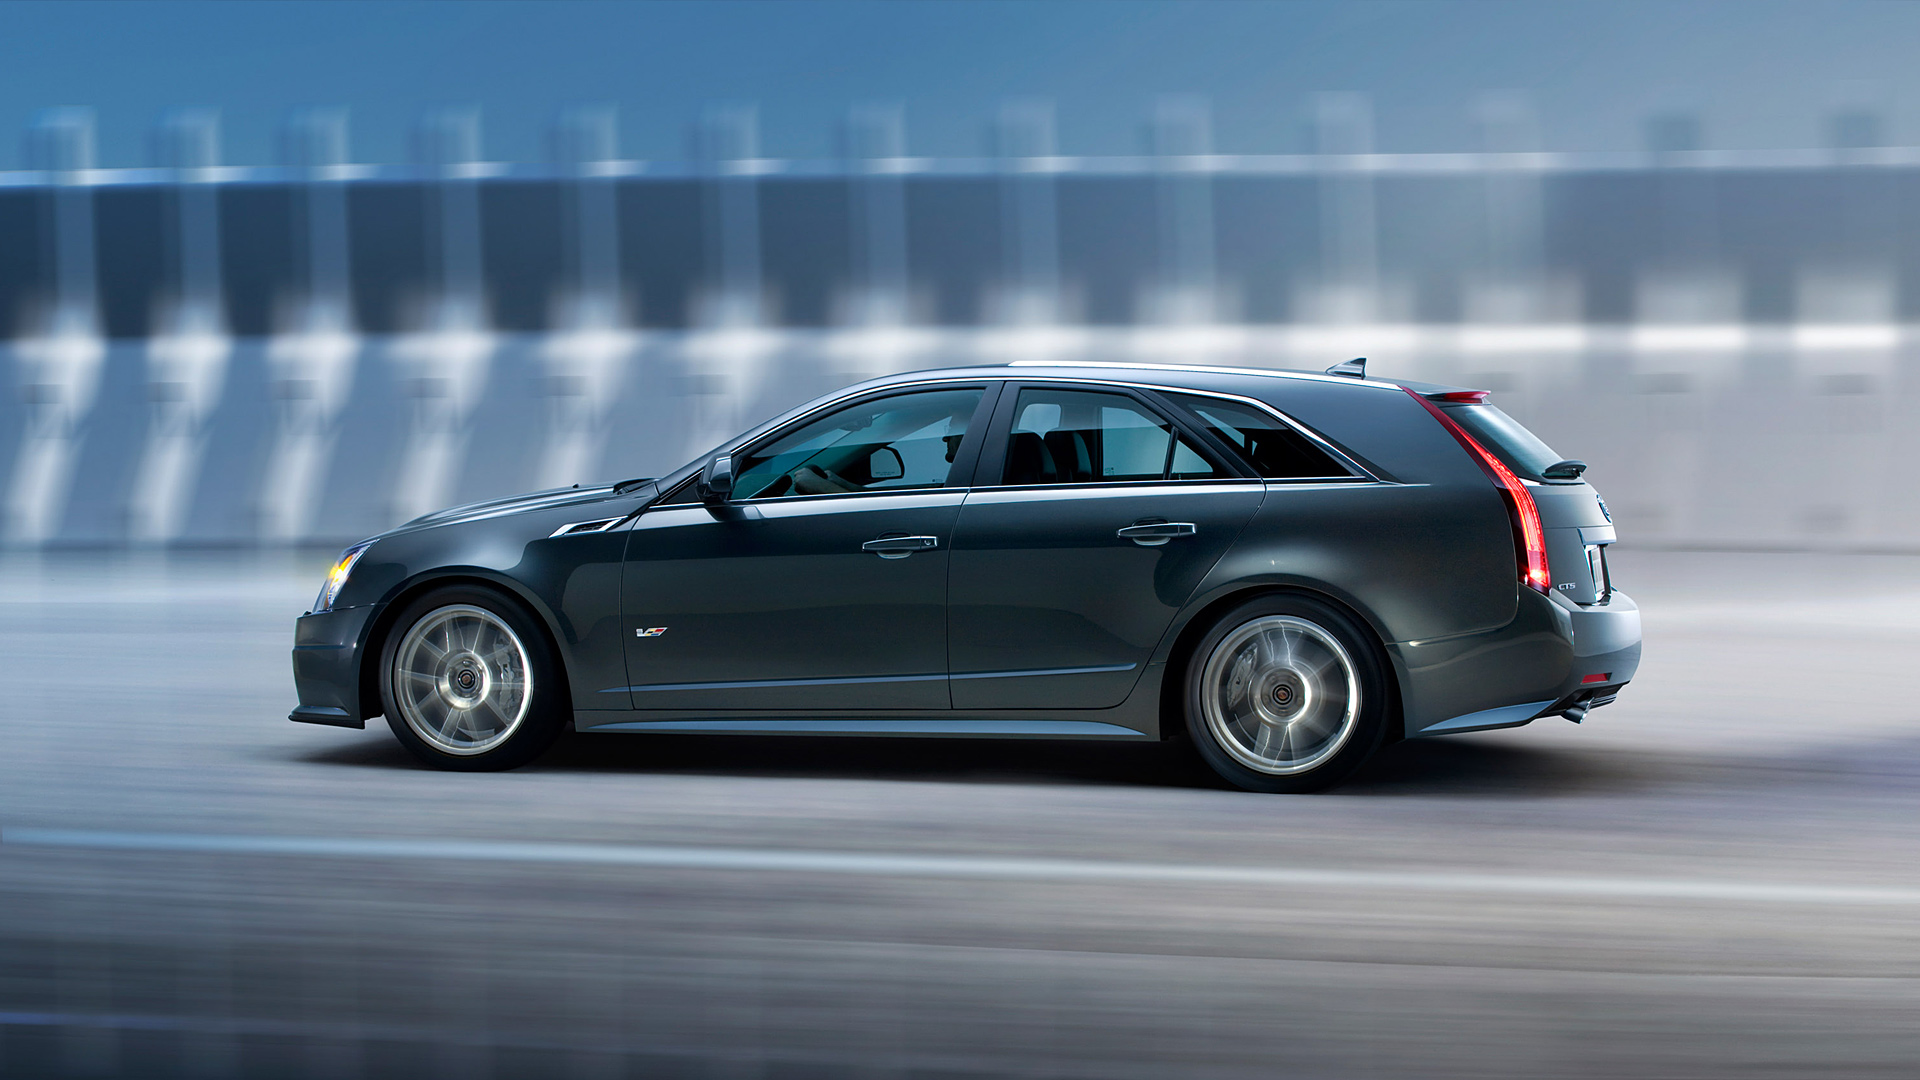 2011 Cadillac CTS-V Sport Wagon Wallpapers & HD Images - WSupercars